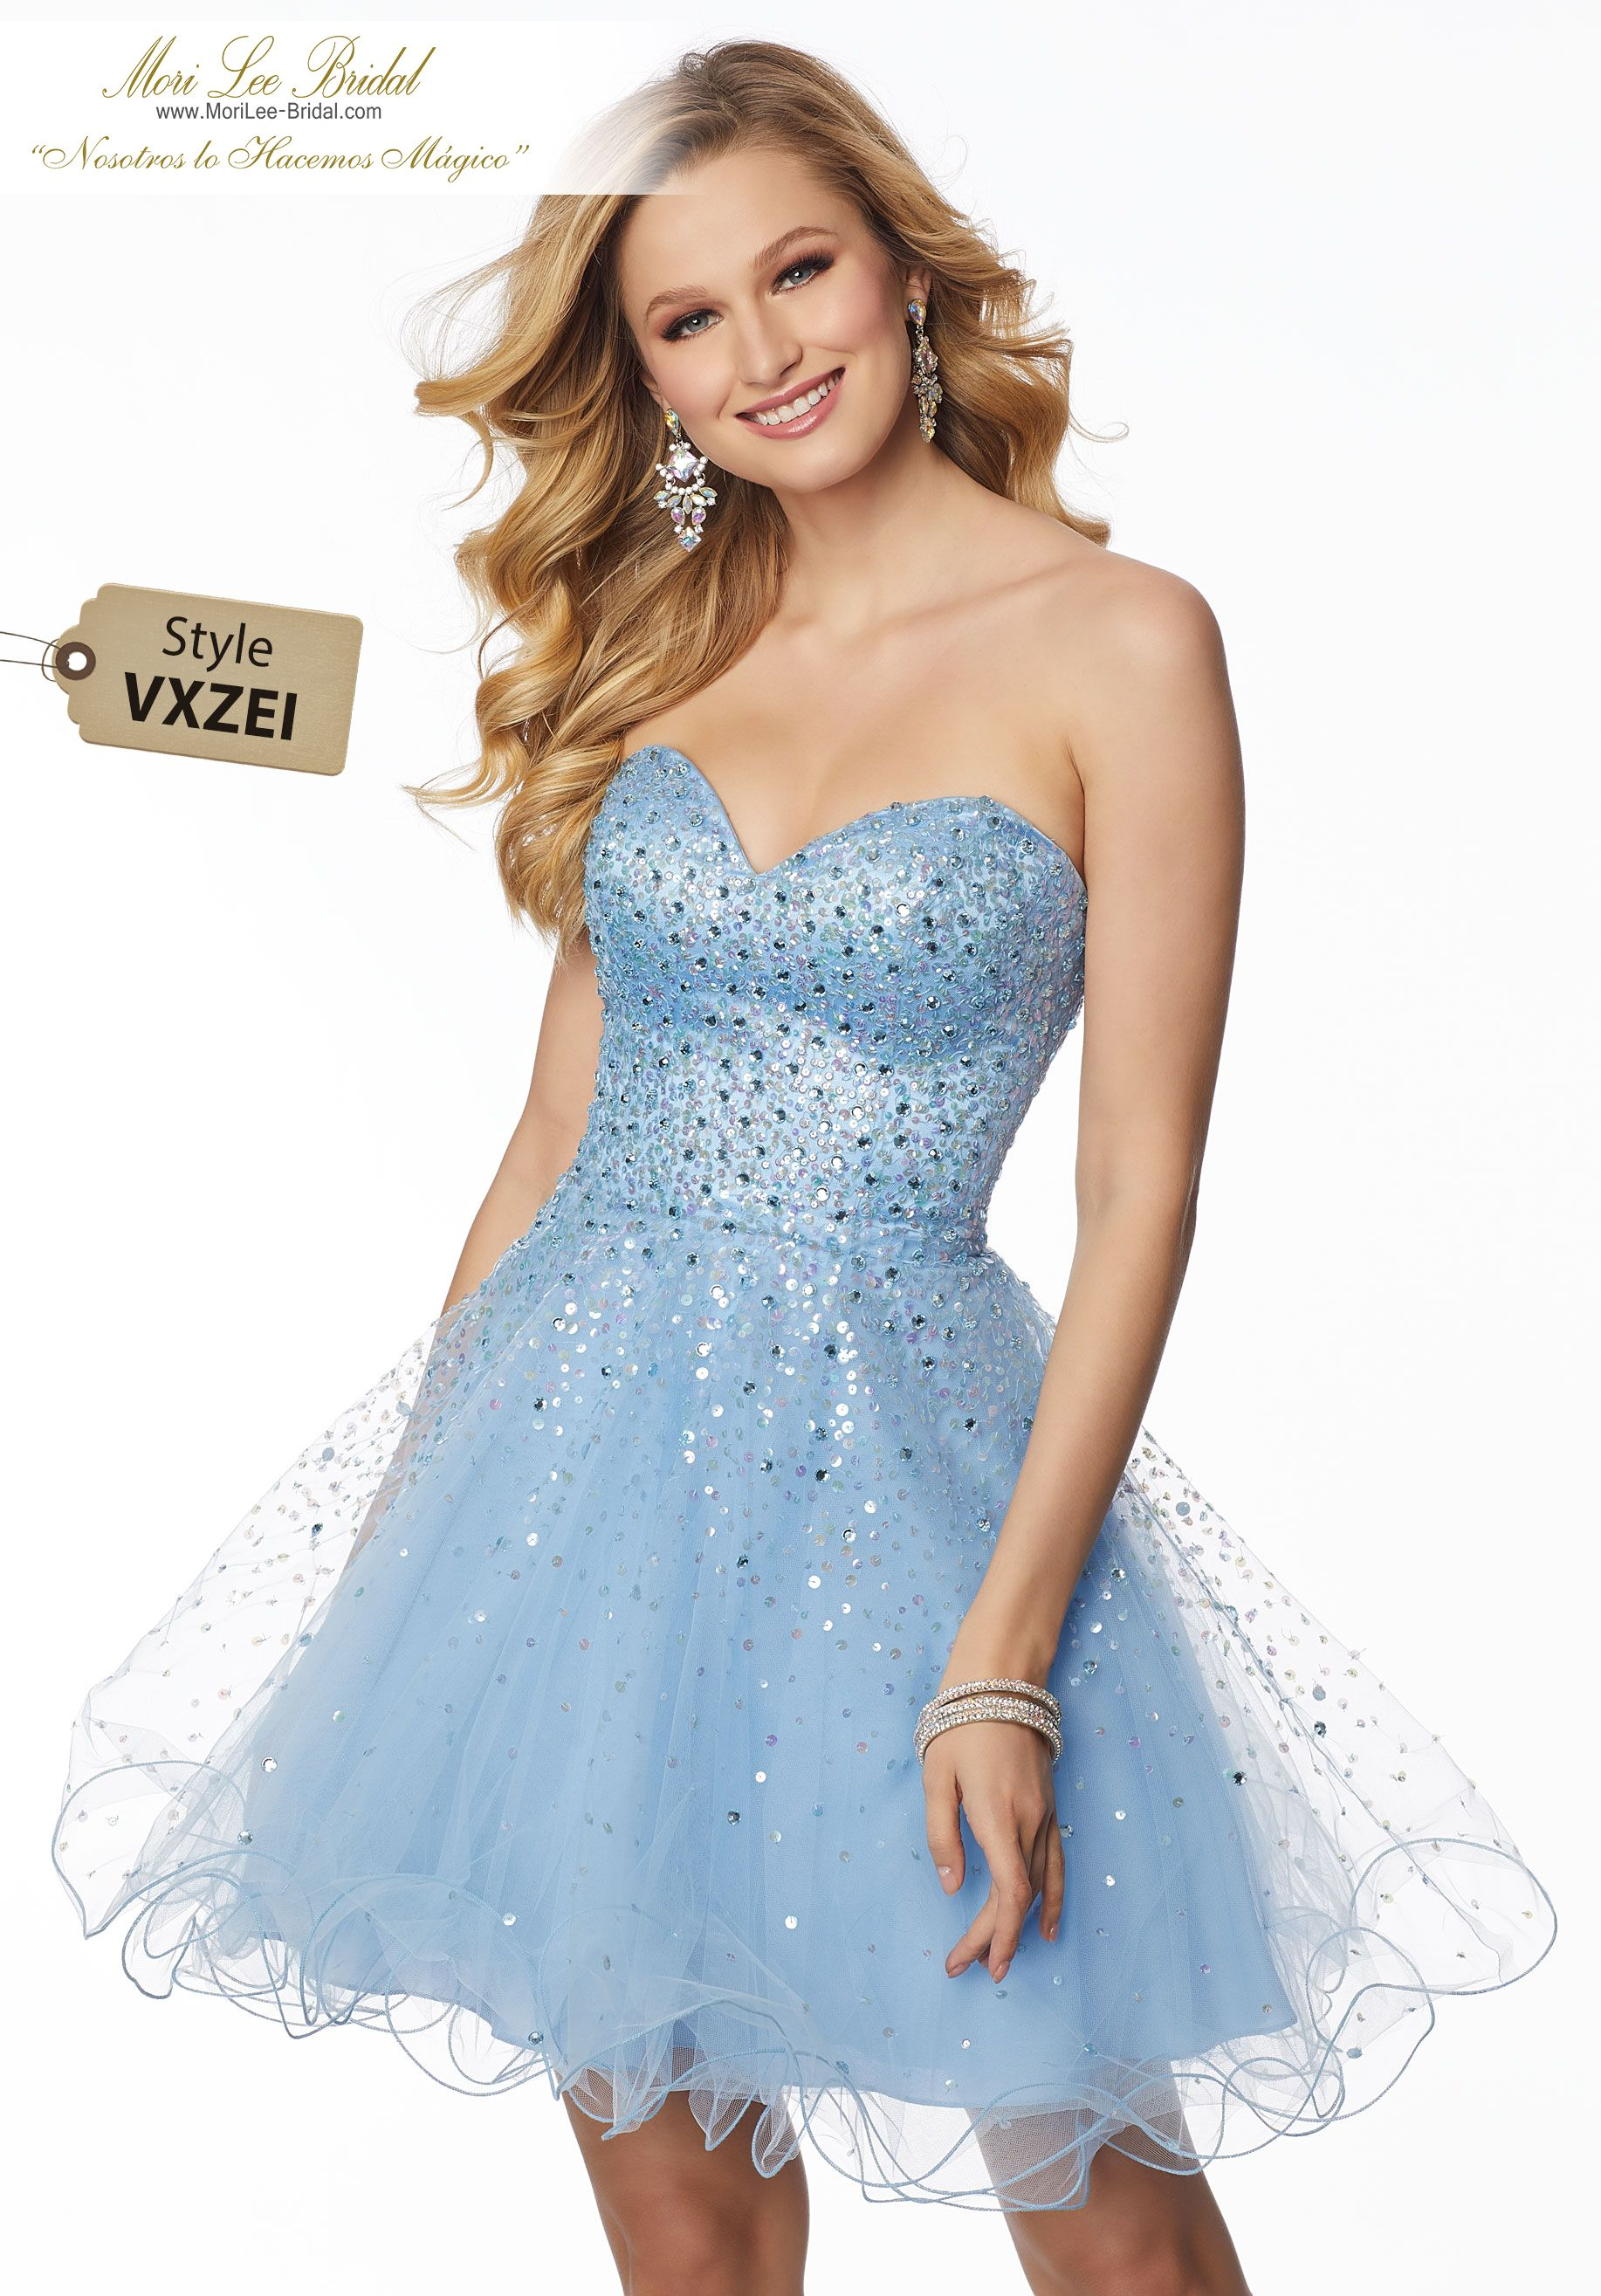 237afa2460 Estilo VXZEI Tulle Party Dress with with Tonal Beading Colors: Navy,  Silver/Nude, Wine, Bahama Blue